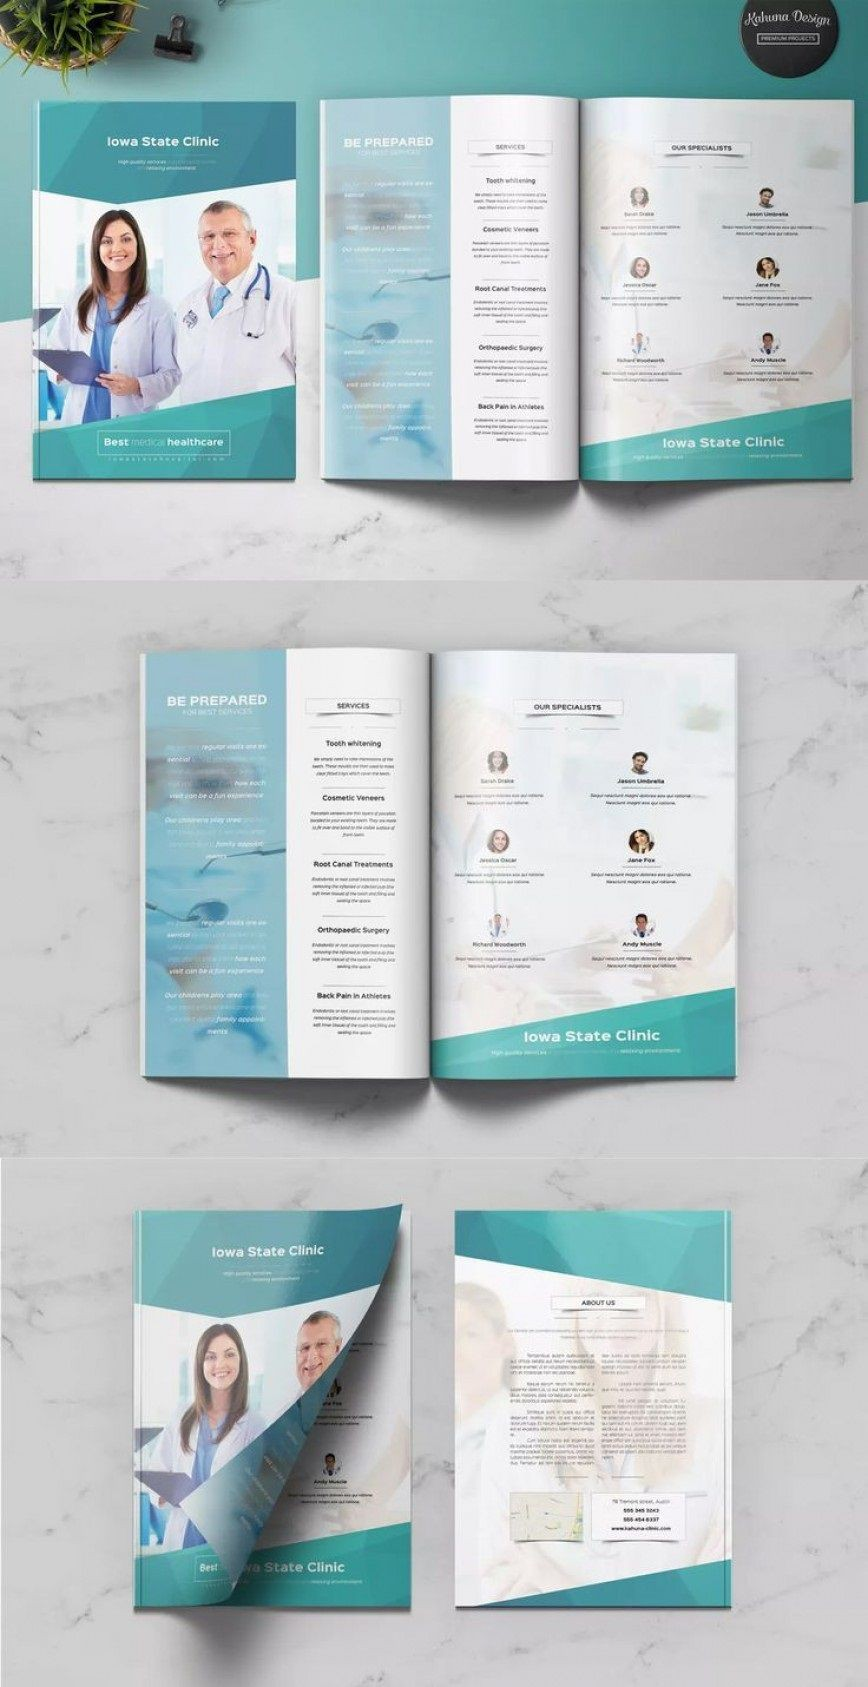 007 Remarkable Download Brochure Template For Microsoft Word 2007 High Def  Free